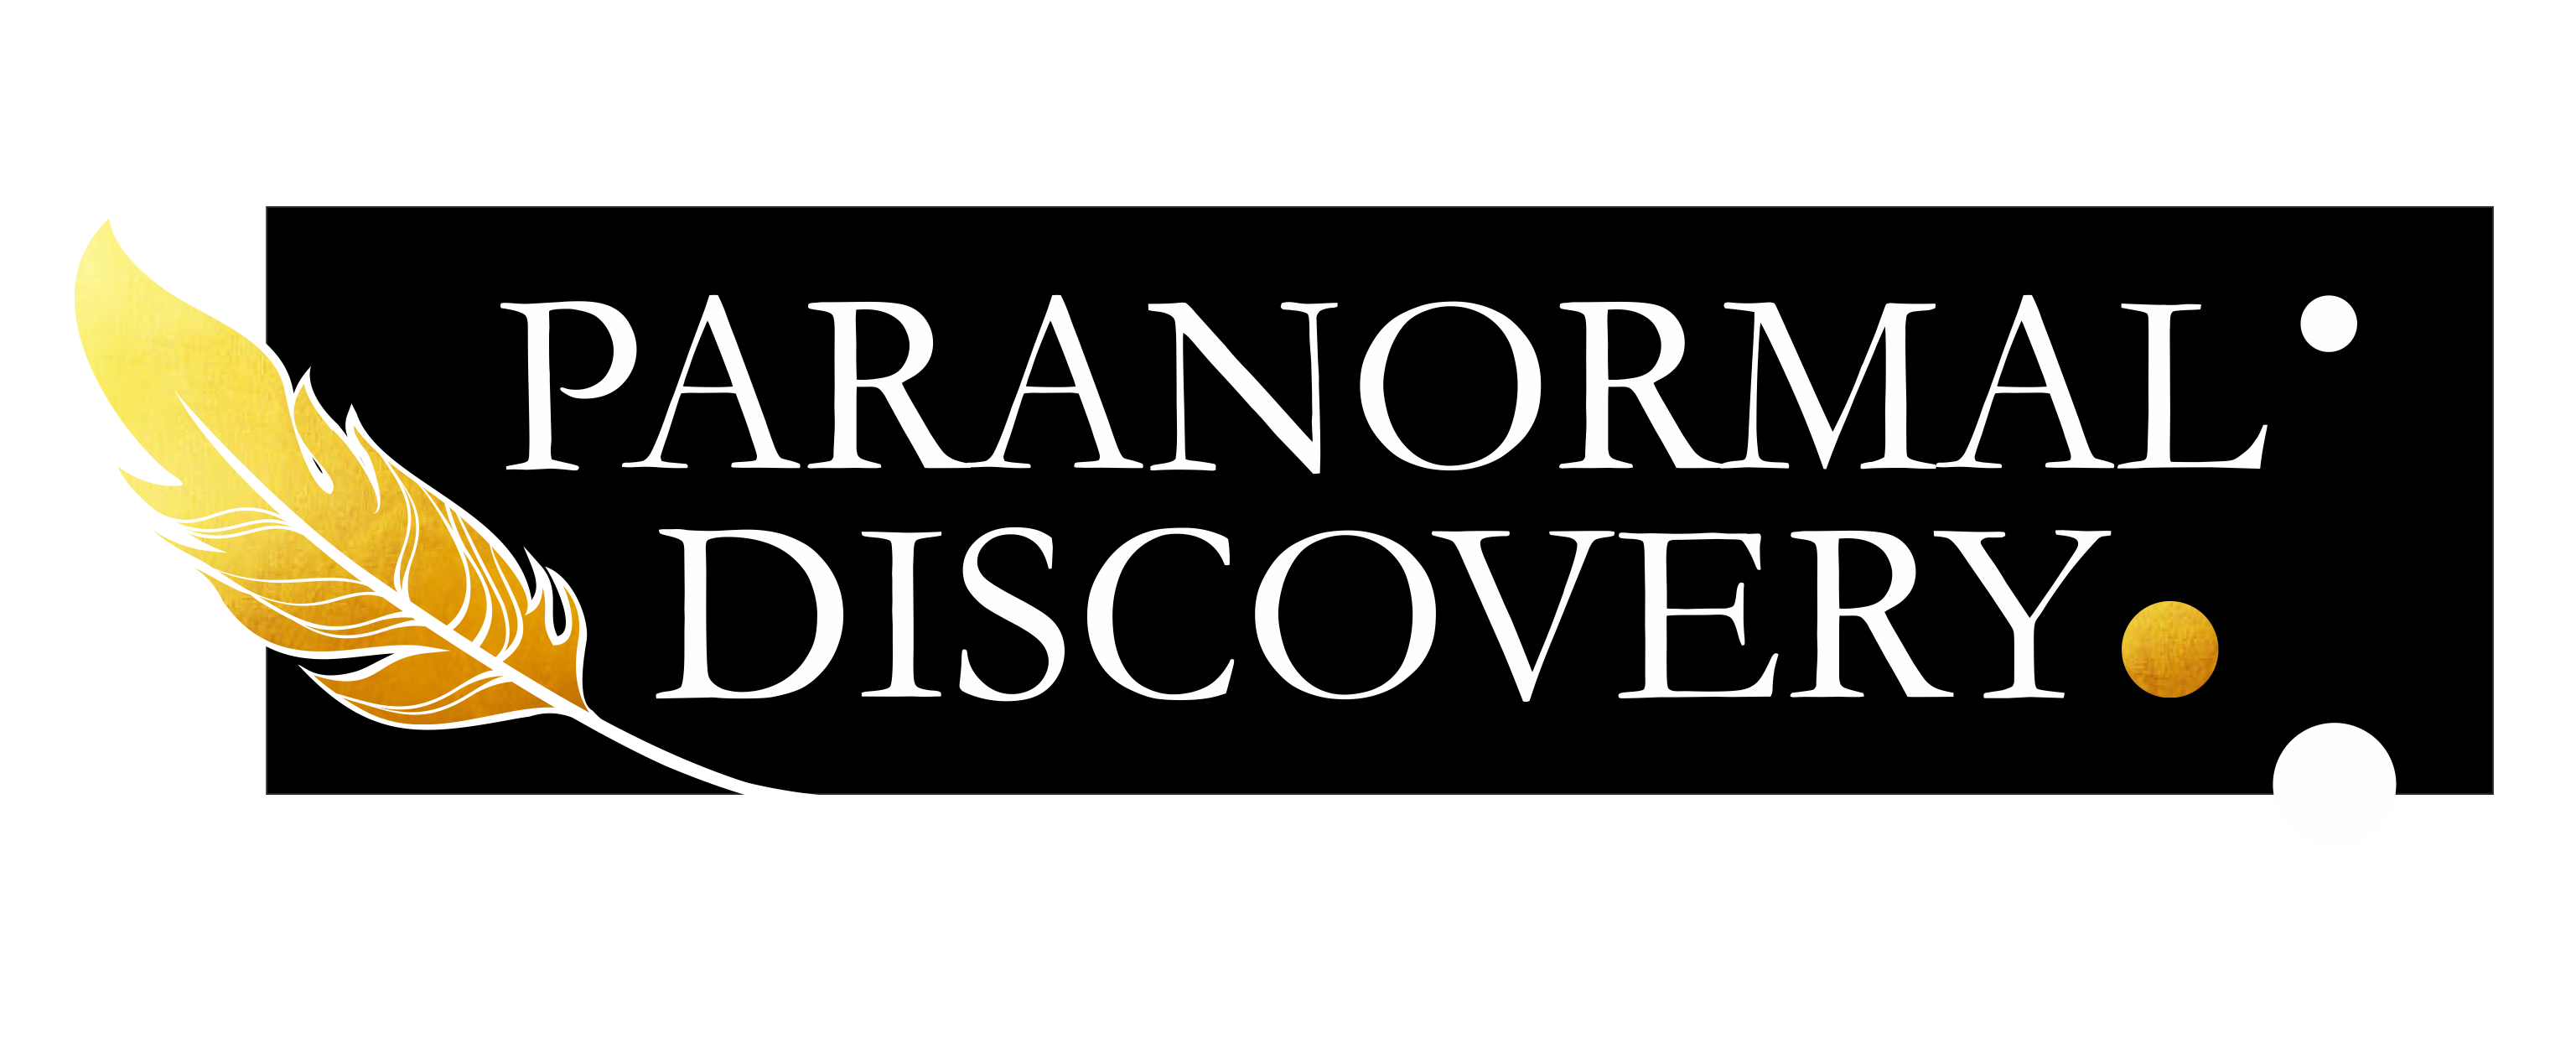 Paranormal Discovery